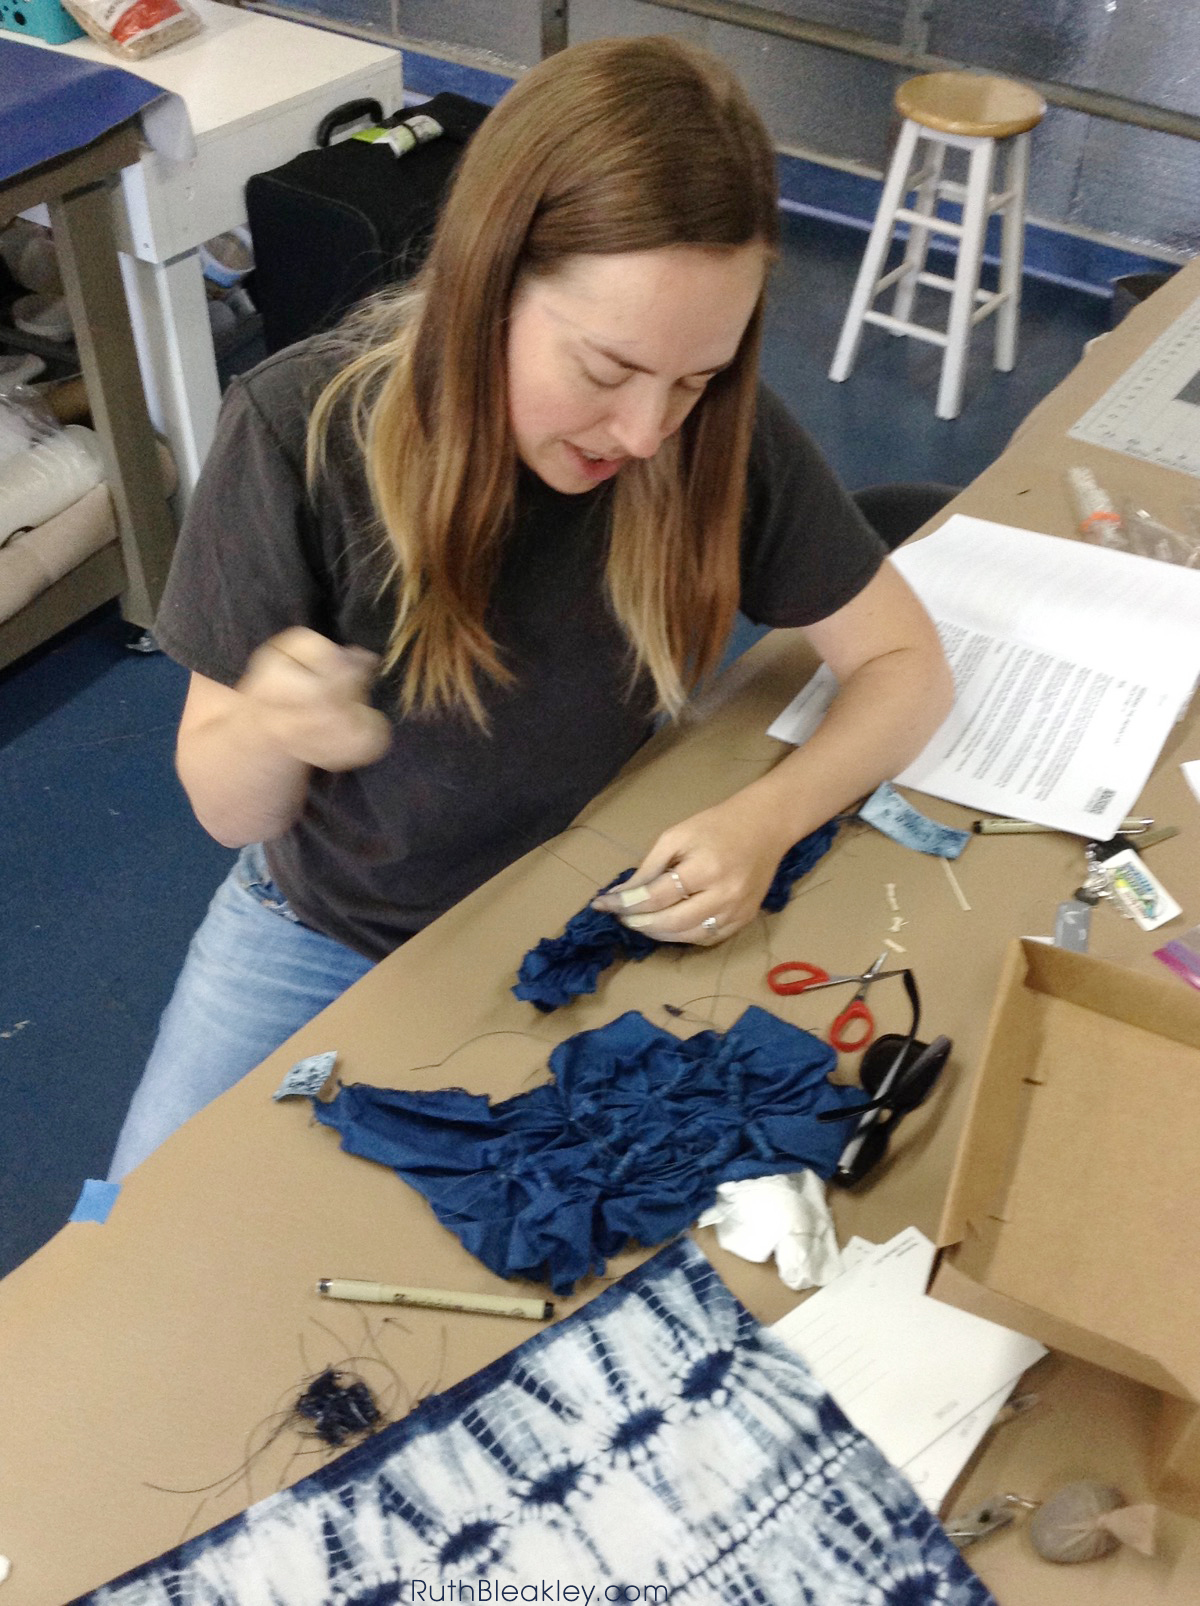 Ruth Bleakley learning Shibori Tie Dye at Aya Fiber Studio - Indigo fiber workshop in Stuart Florida - 4